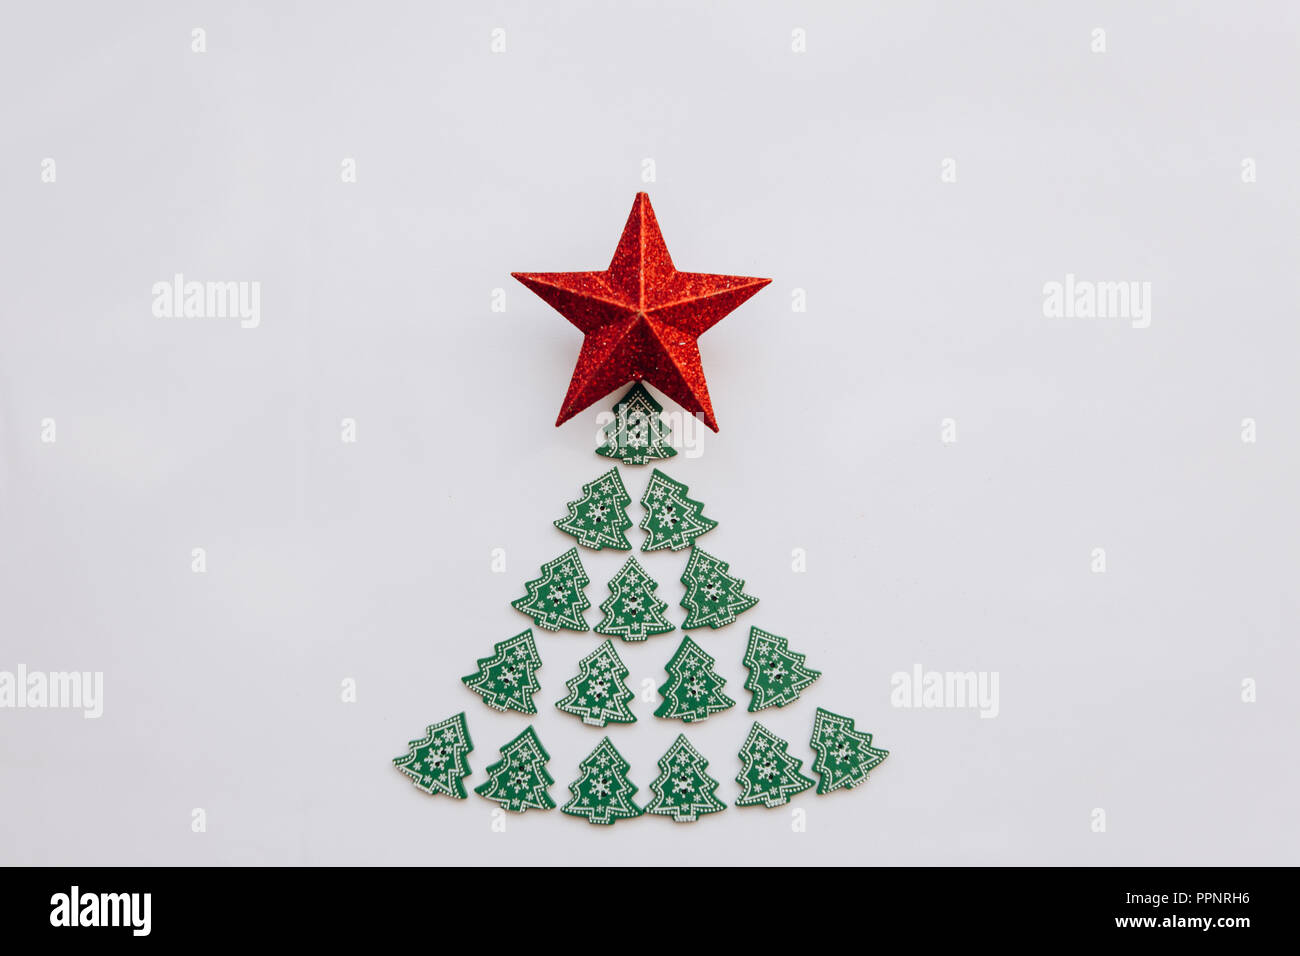 creative idea in minimalistic style for christmas or new year themes christmas tree from other small wooden christmas trees and a star on top